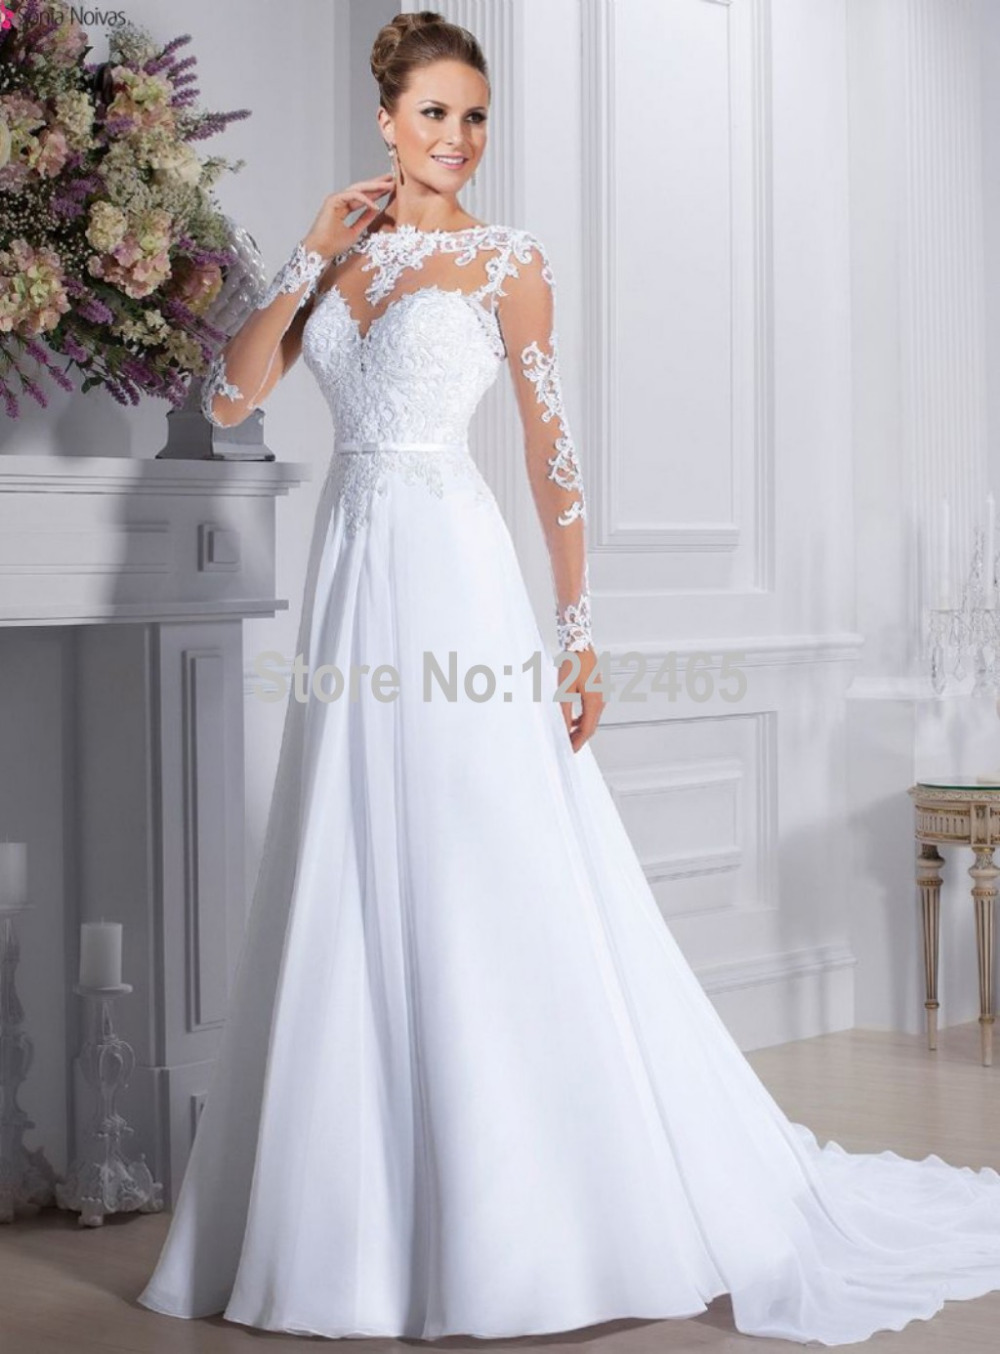 a521e9dead Sexy See Through Vestido De Novia A Line Long Sleeve Bride Dresses Court  Train Chiffon Summer Wedding Dress With Appliqued EN344-in Wedding Dresses  from ...